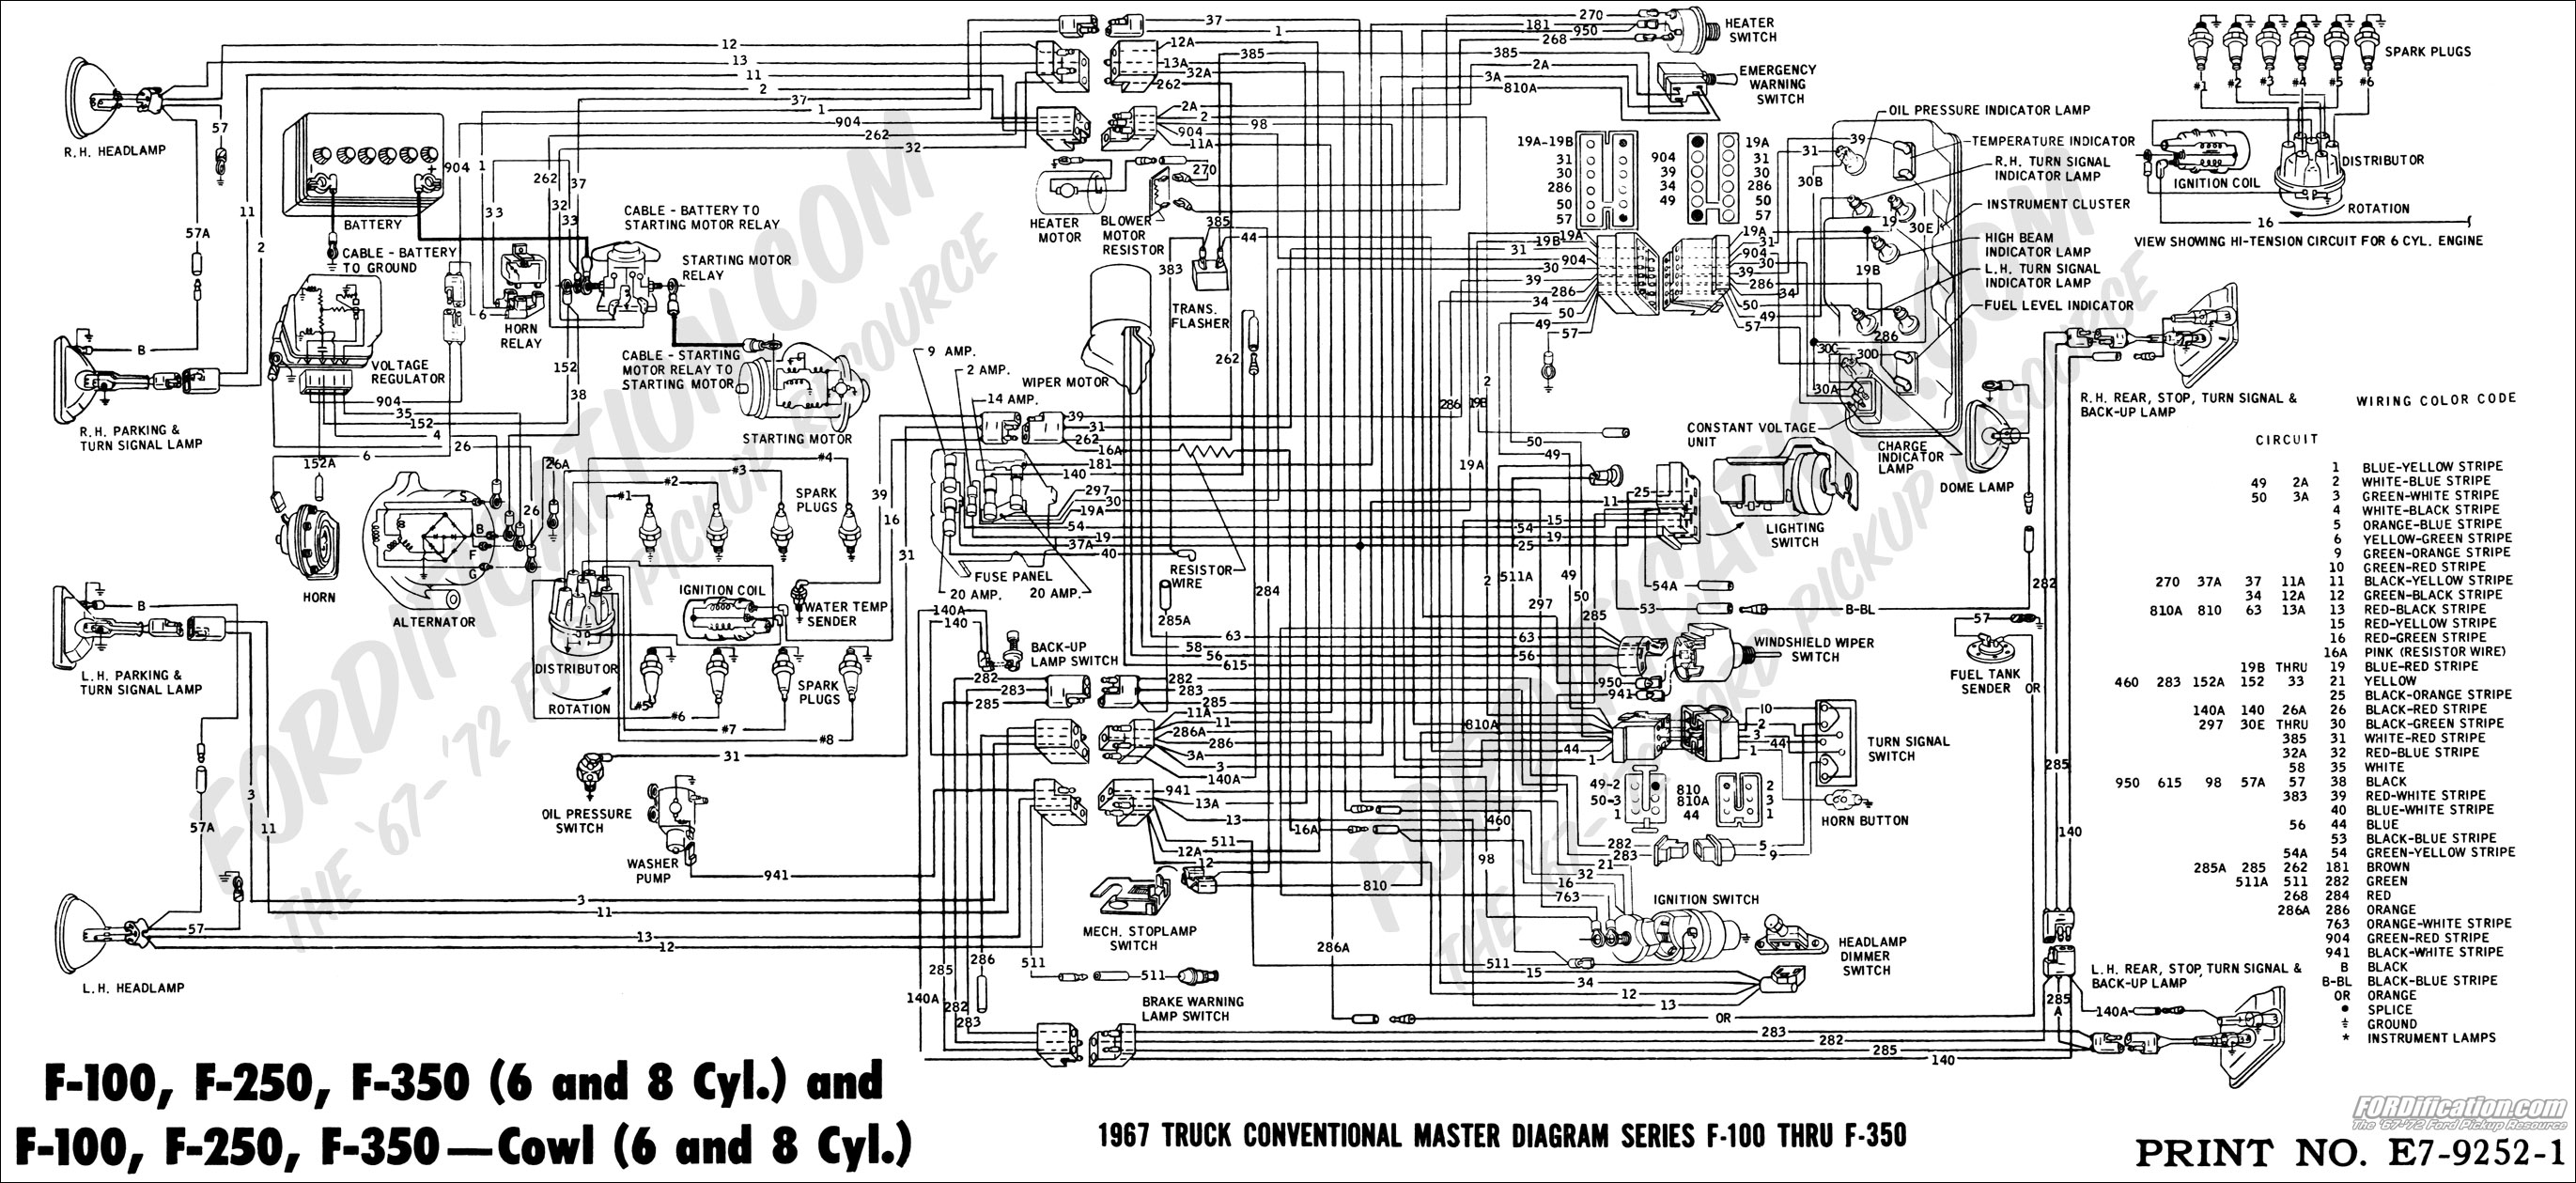 1985 ford f250 wiring diagram wiring library u2022 vanesa co rh vanesa co